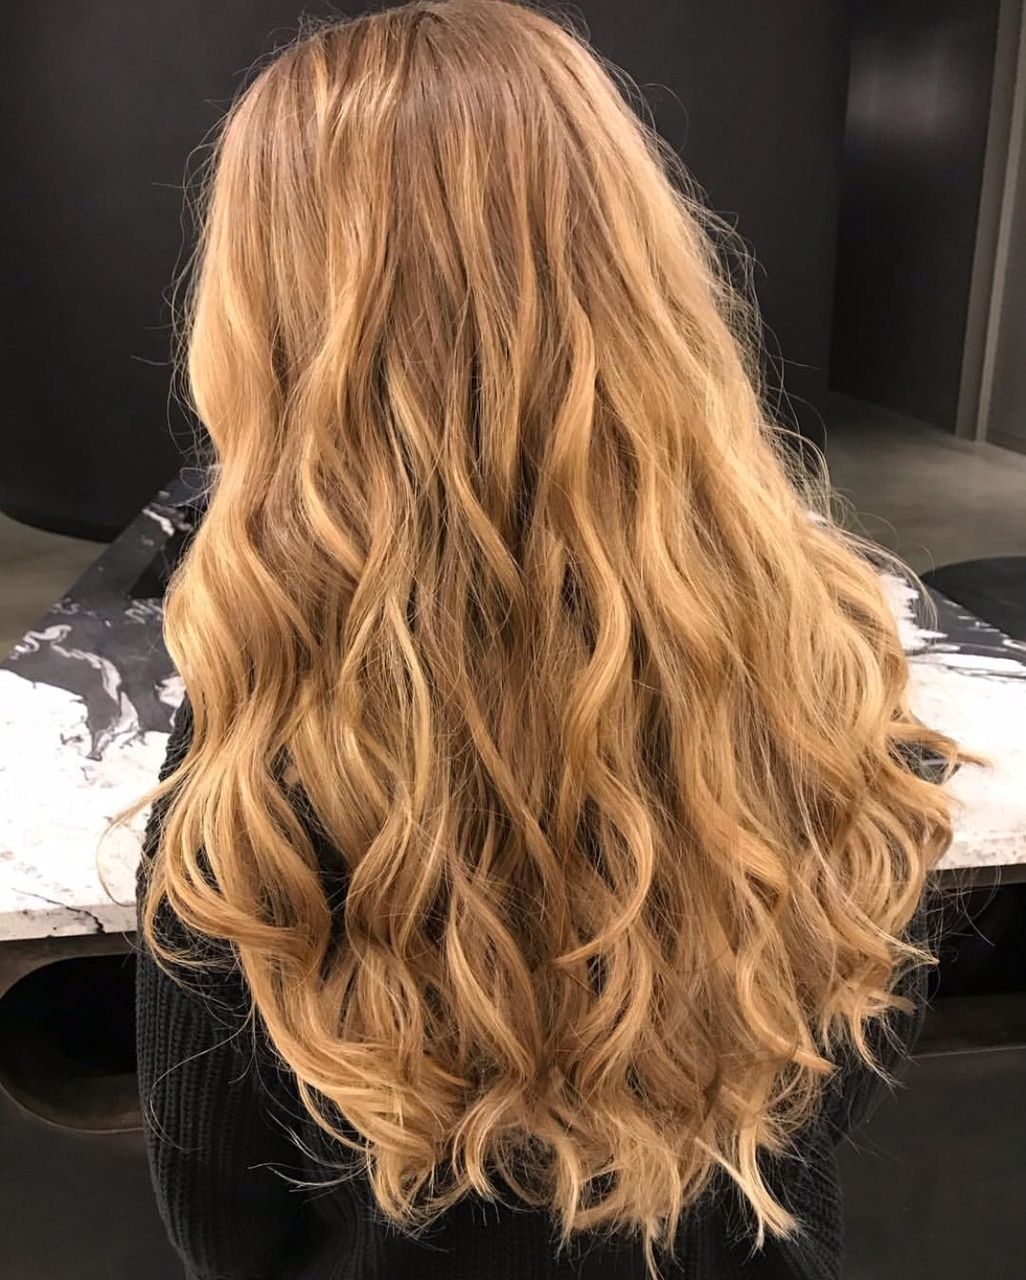 Natural Balayage On Extra Long Locks By The Design Team At G Michael Salon Indy S Premier Oribe Salon Indy Indyhair Carmelindiana Indianapolis Balayage